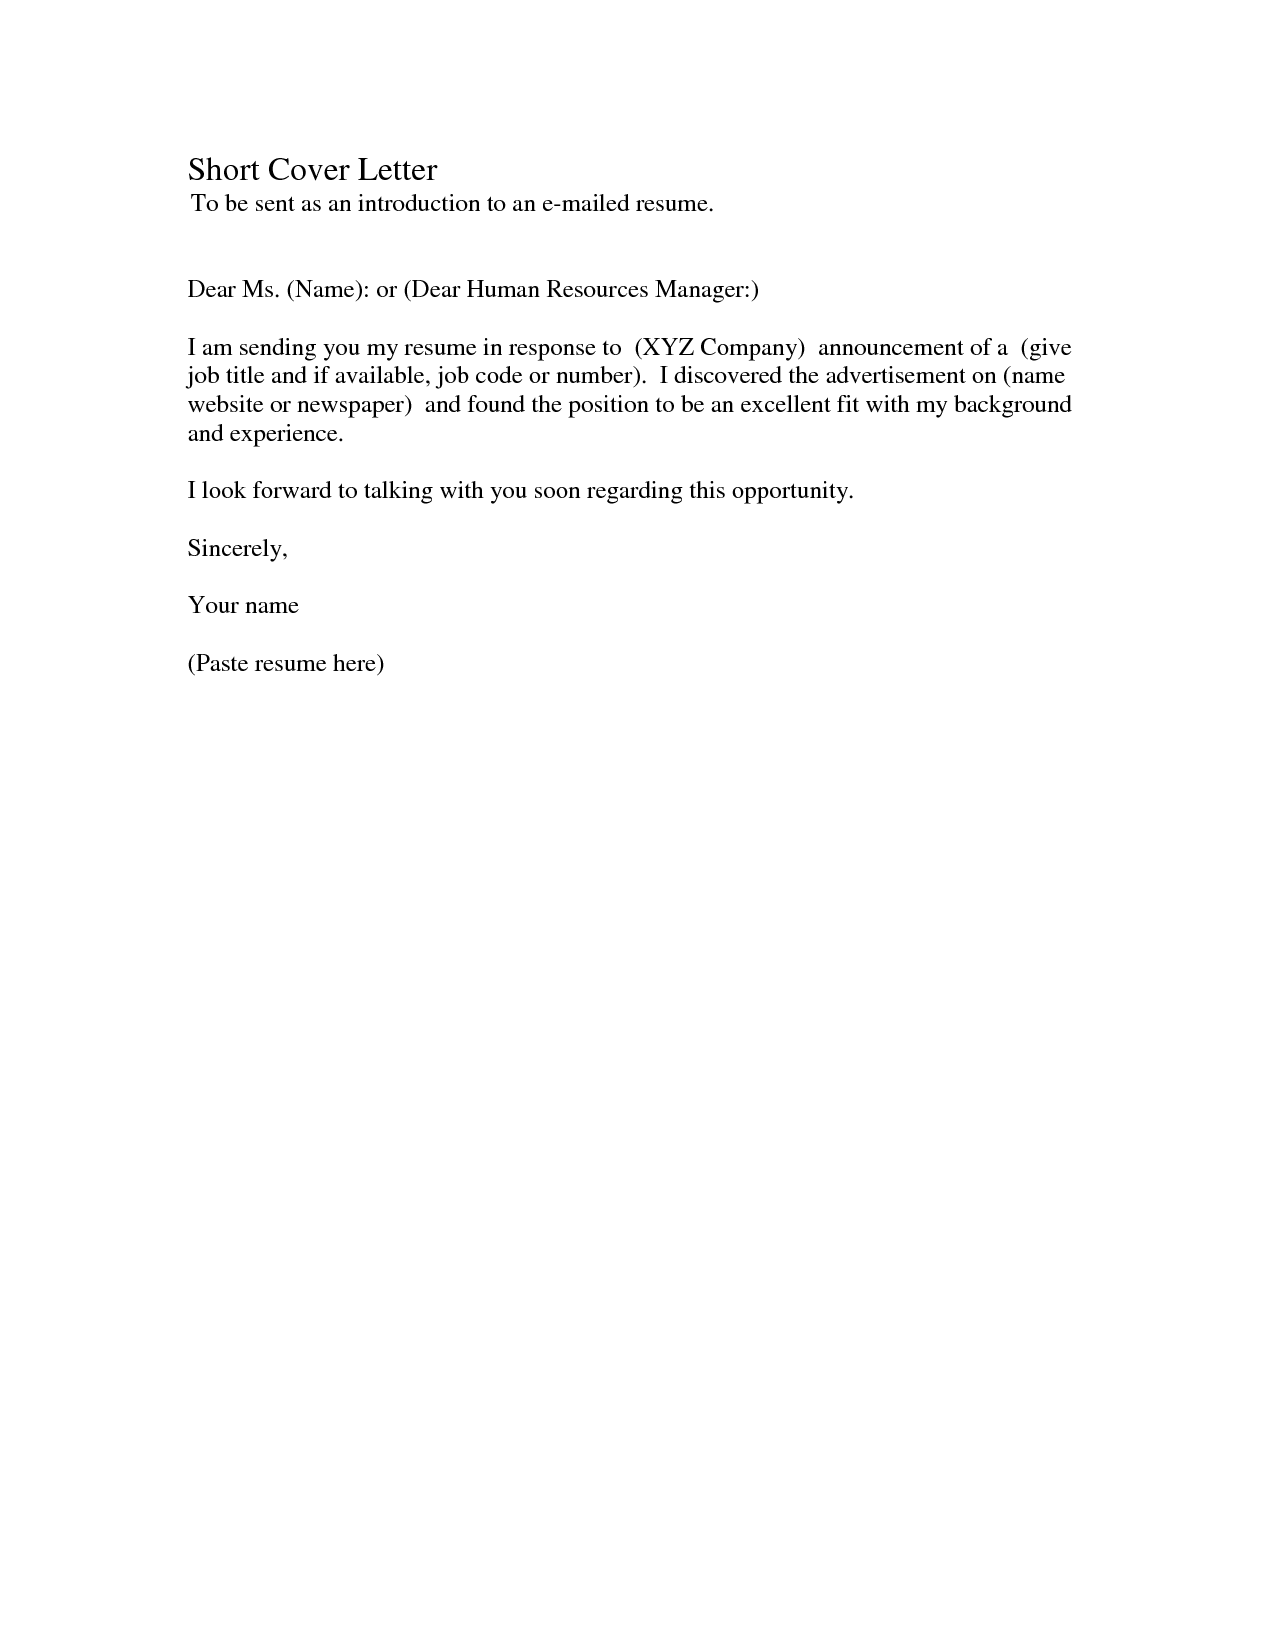 simple cover lettersimple cover letter application letter sample - Simple Cover Letter For Resume